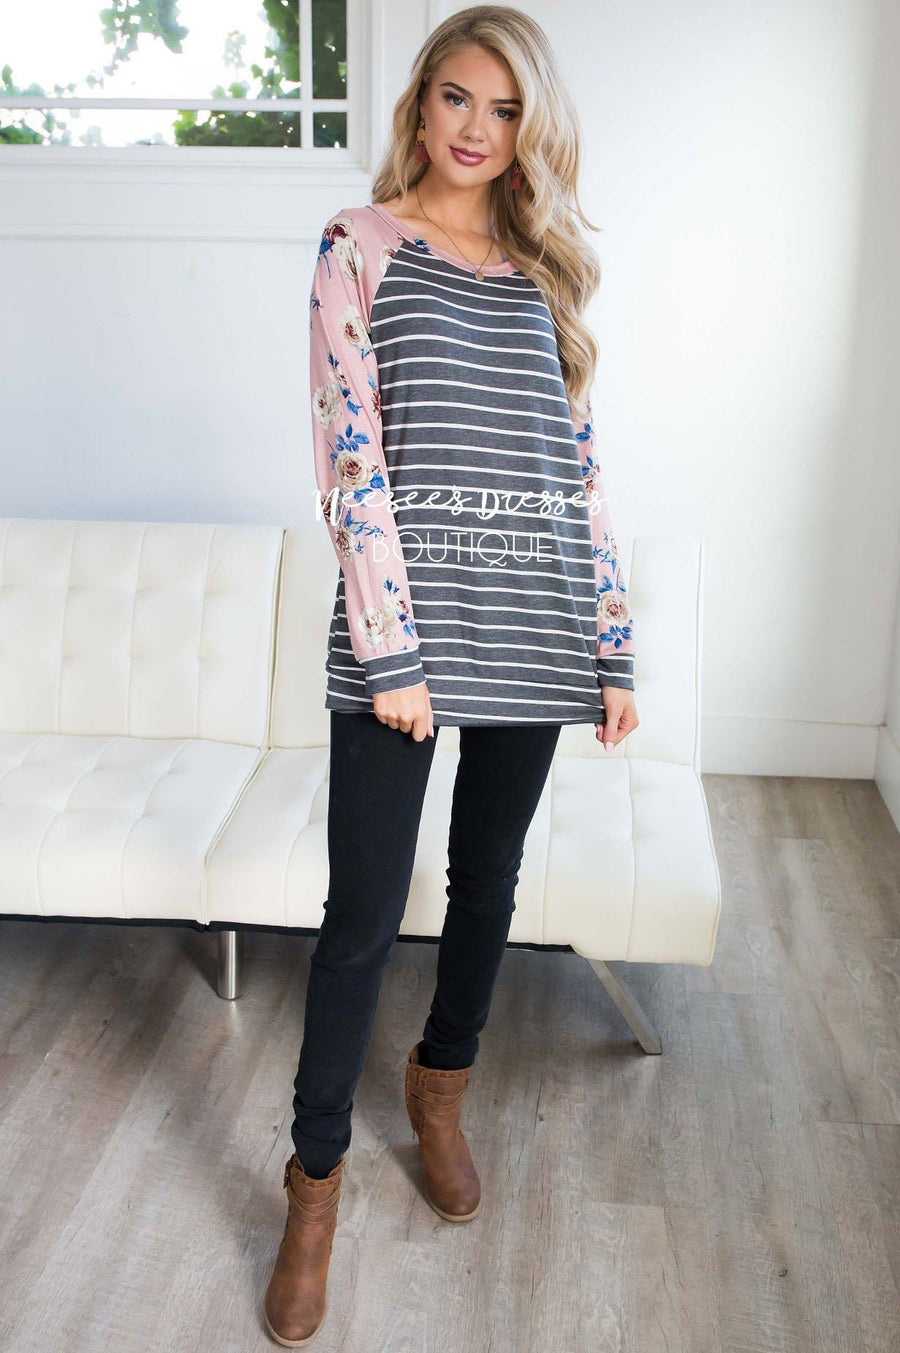 Floral Sleeve & Striped Top